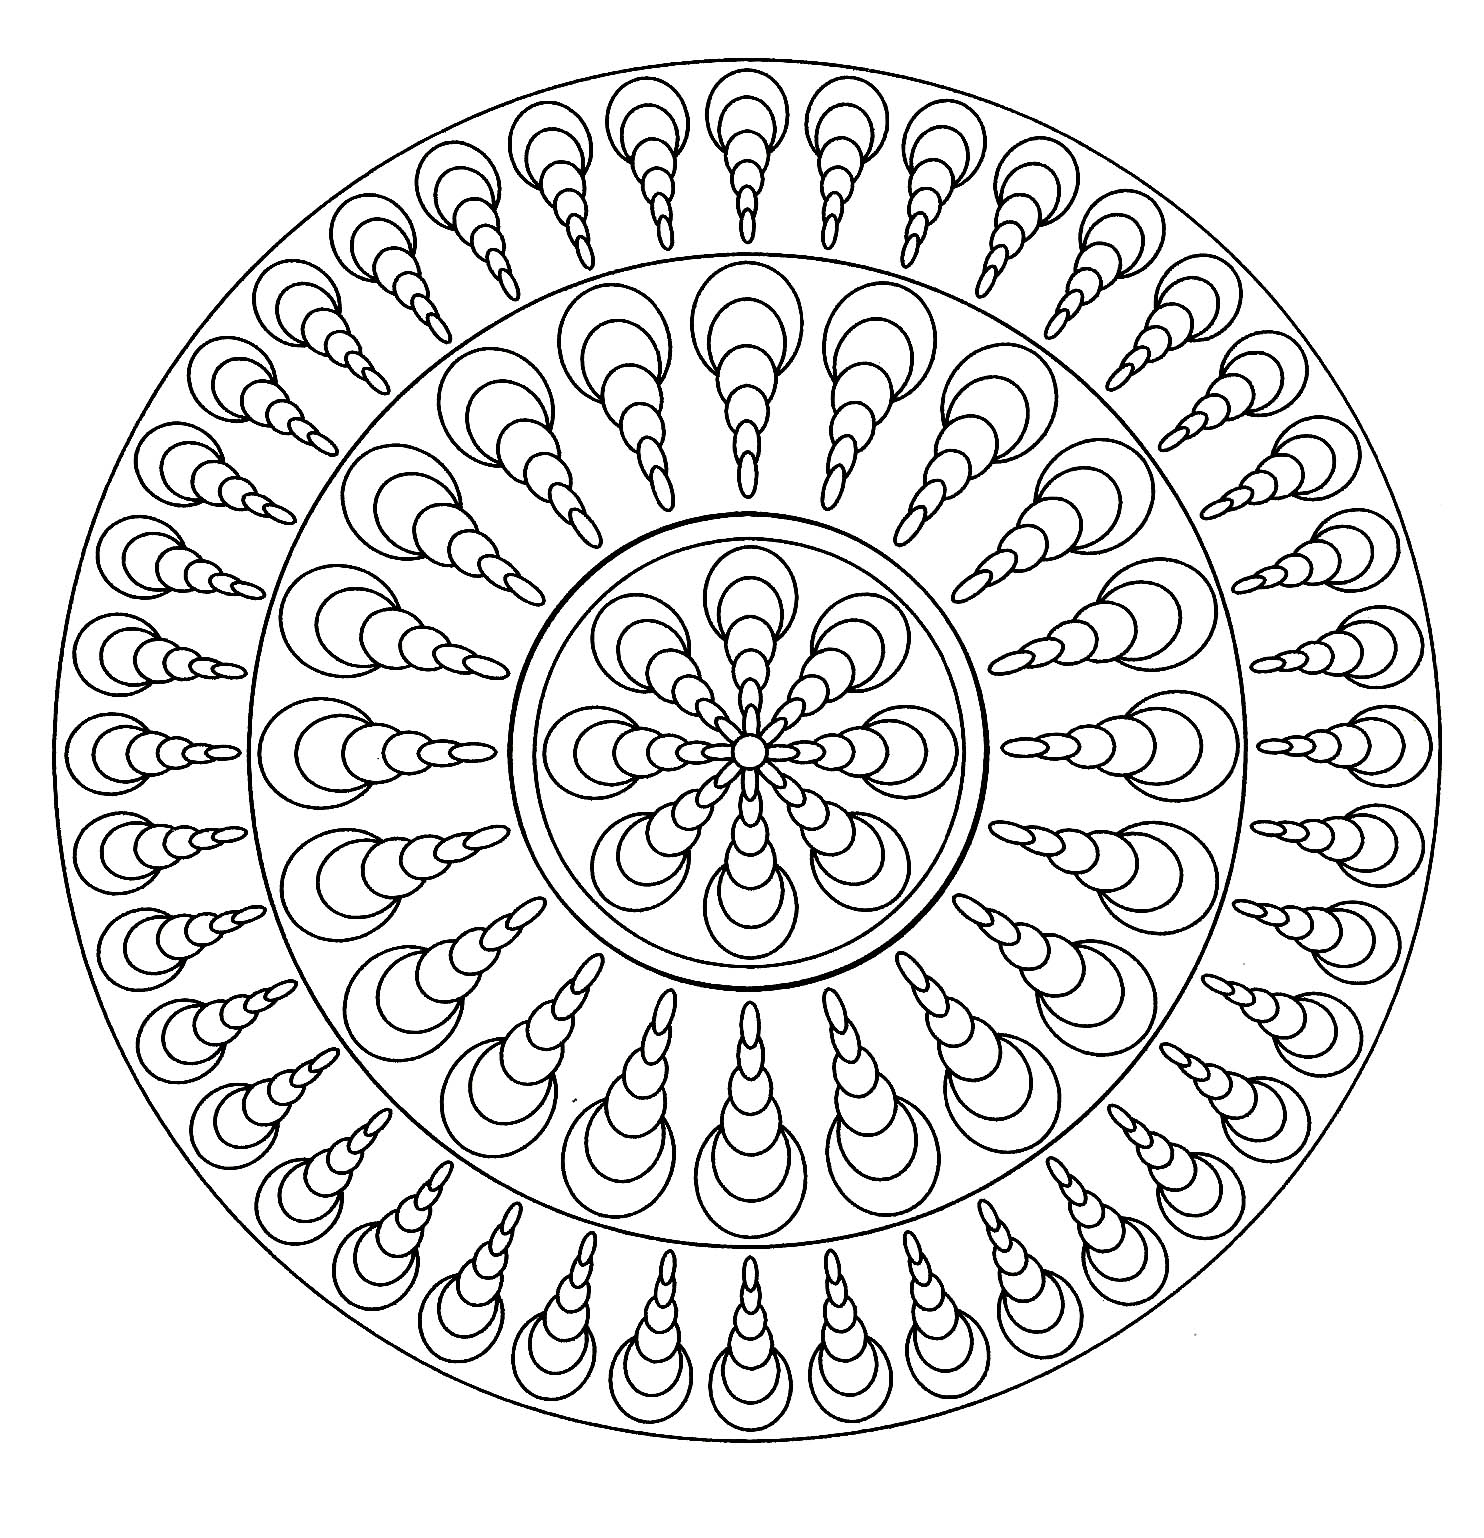 simple mandala 4 mandalas coloring pages for adults justcolor